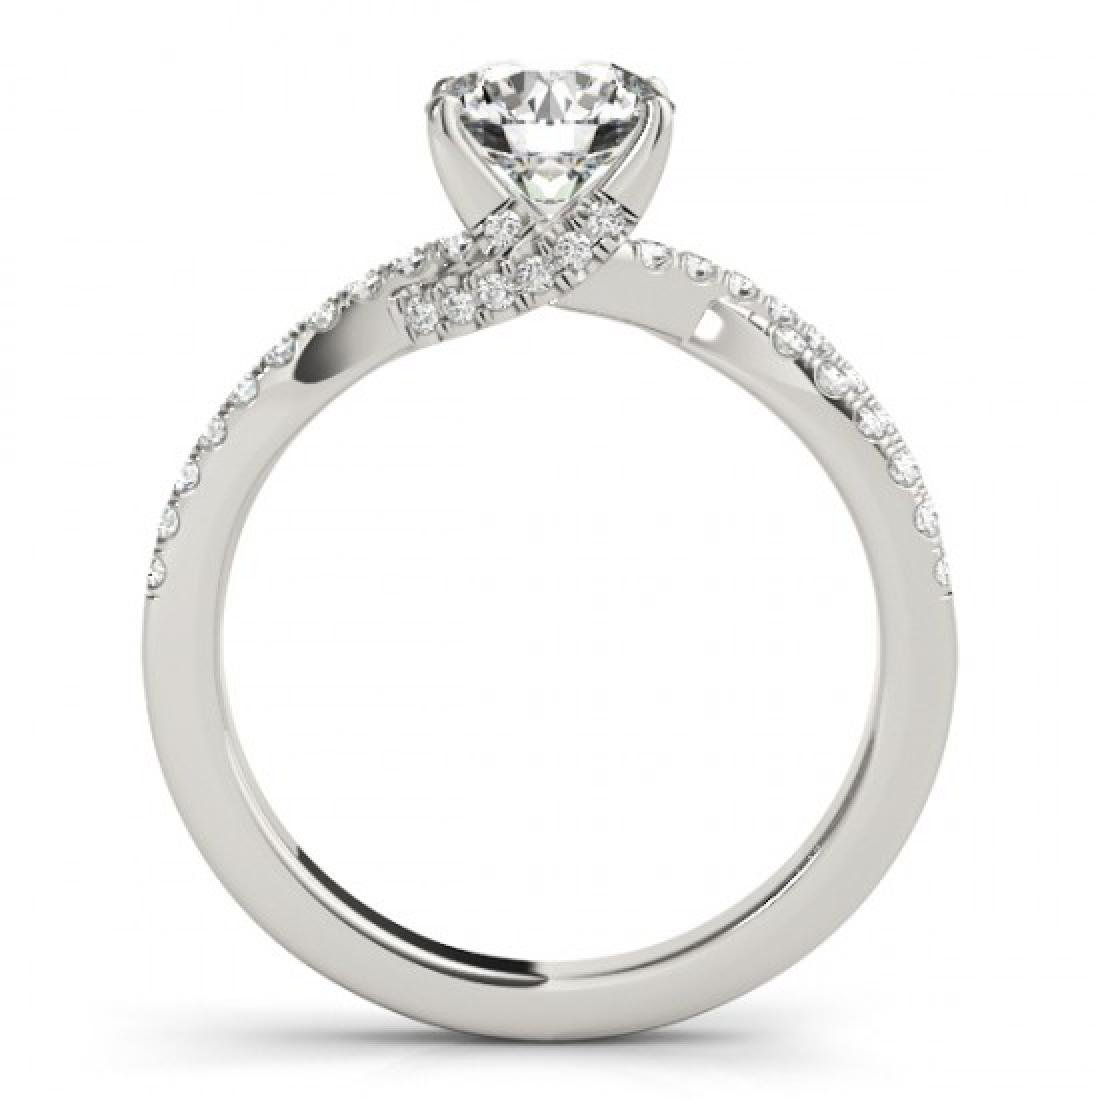 1.05 CTW Certified VS/SI Diamond Solitaire Ring 14K - 2